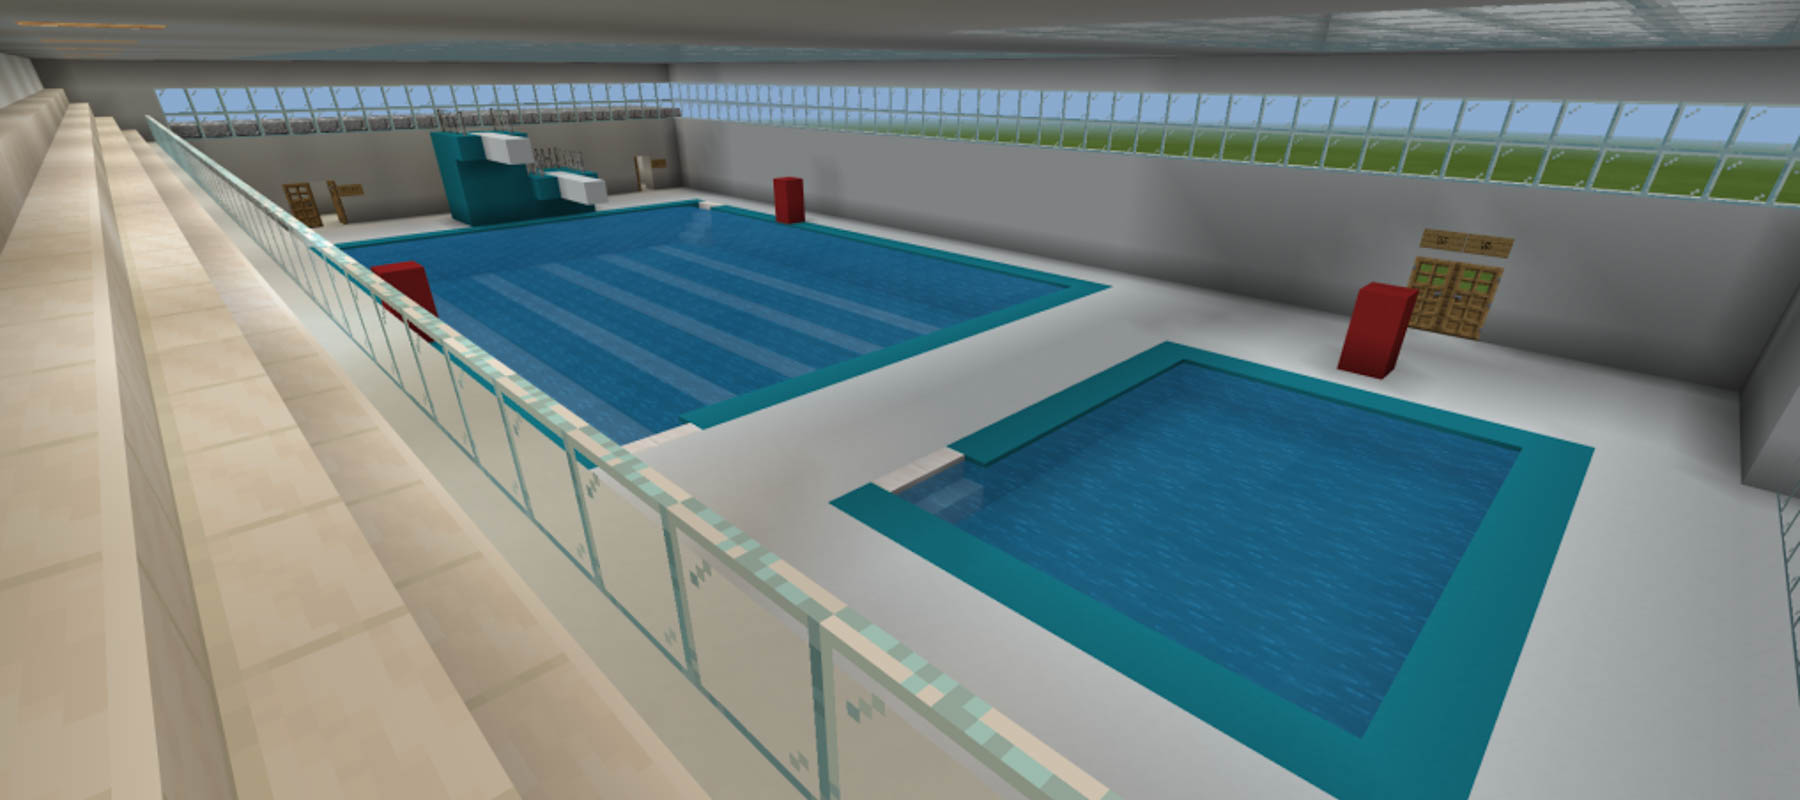 Mock up of indoor swimming pool, with two pools, two diving boards and a seating area